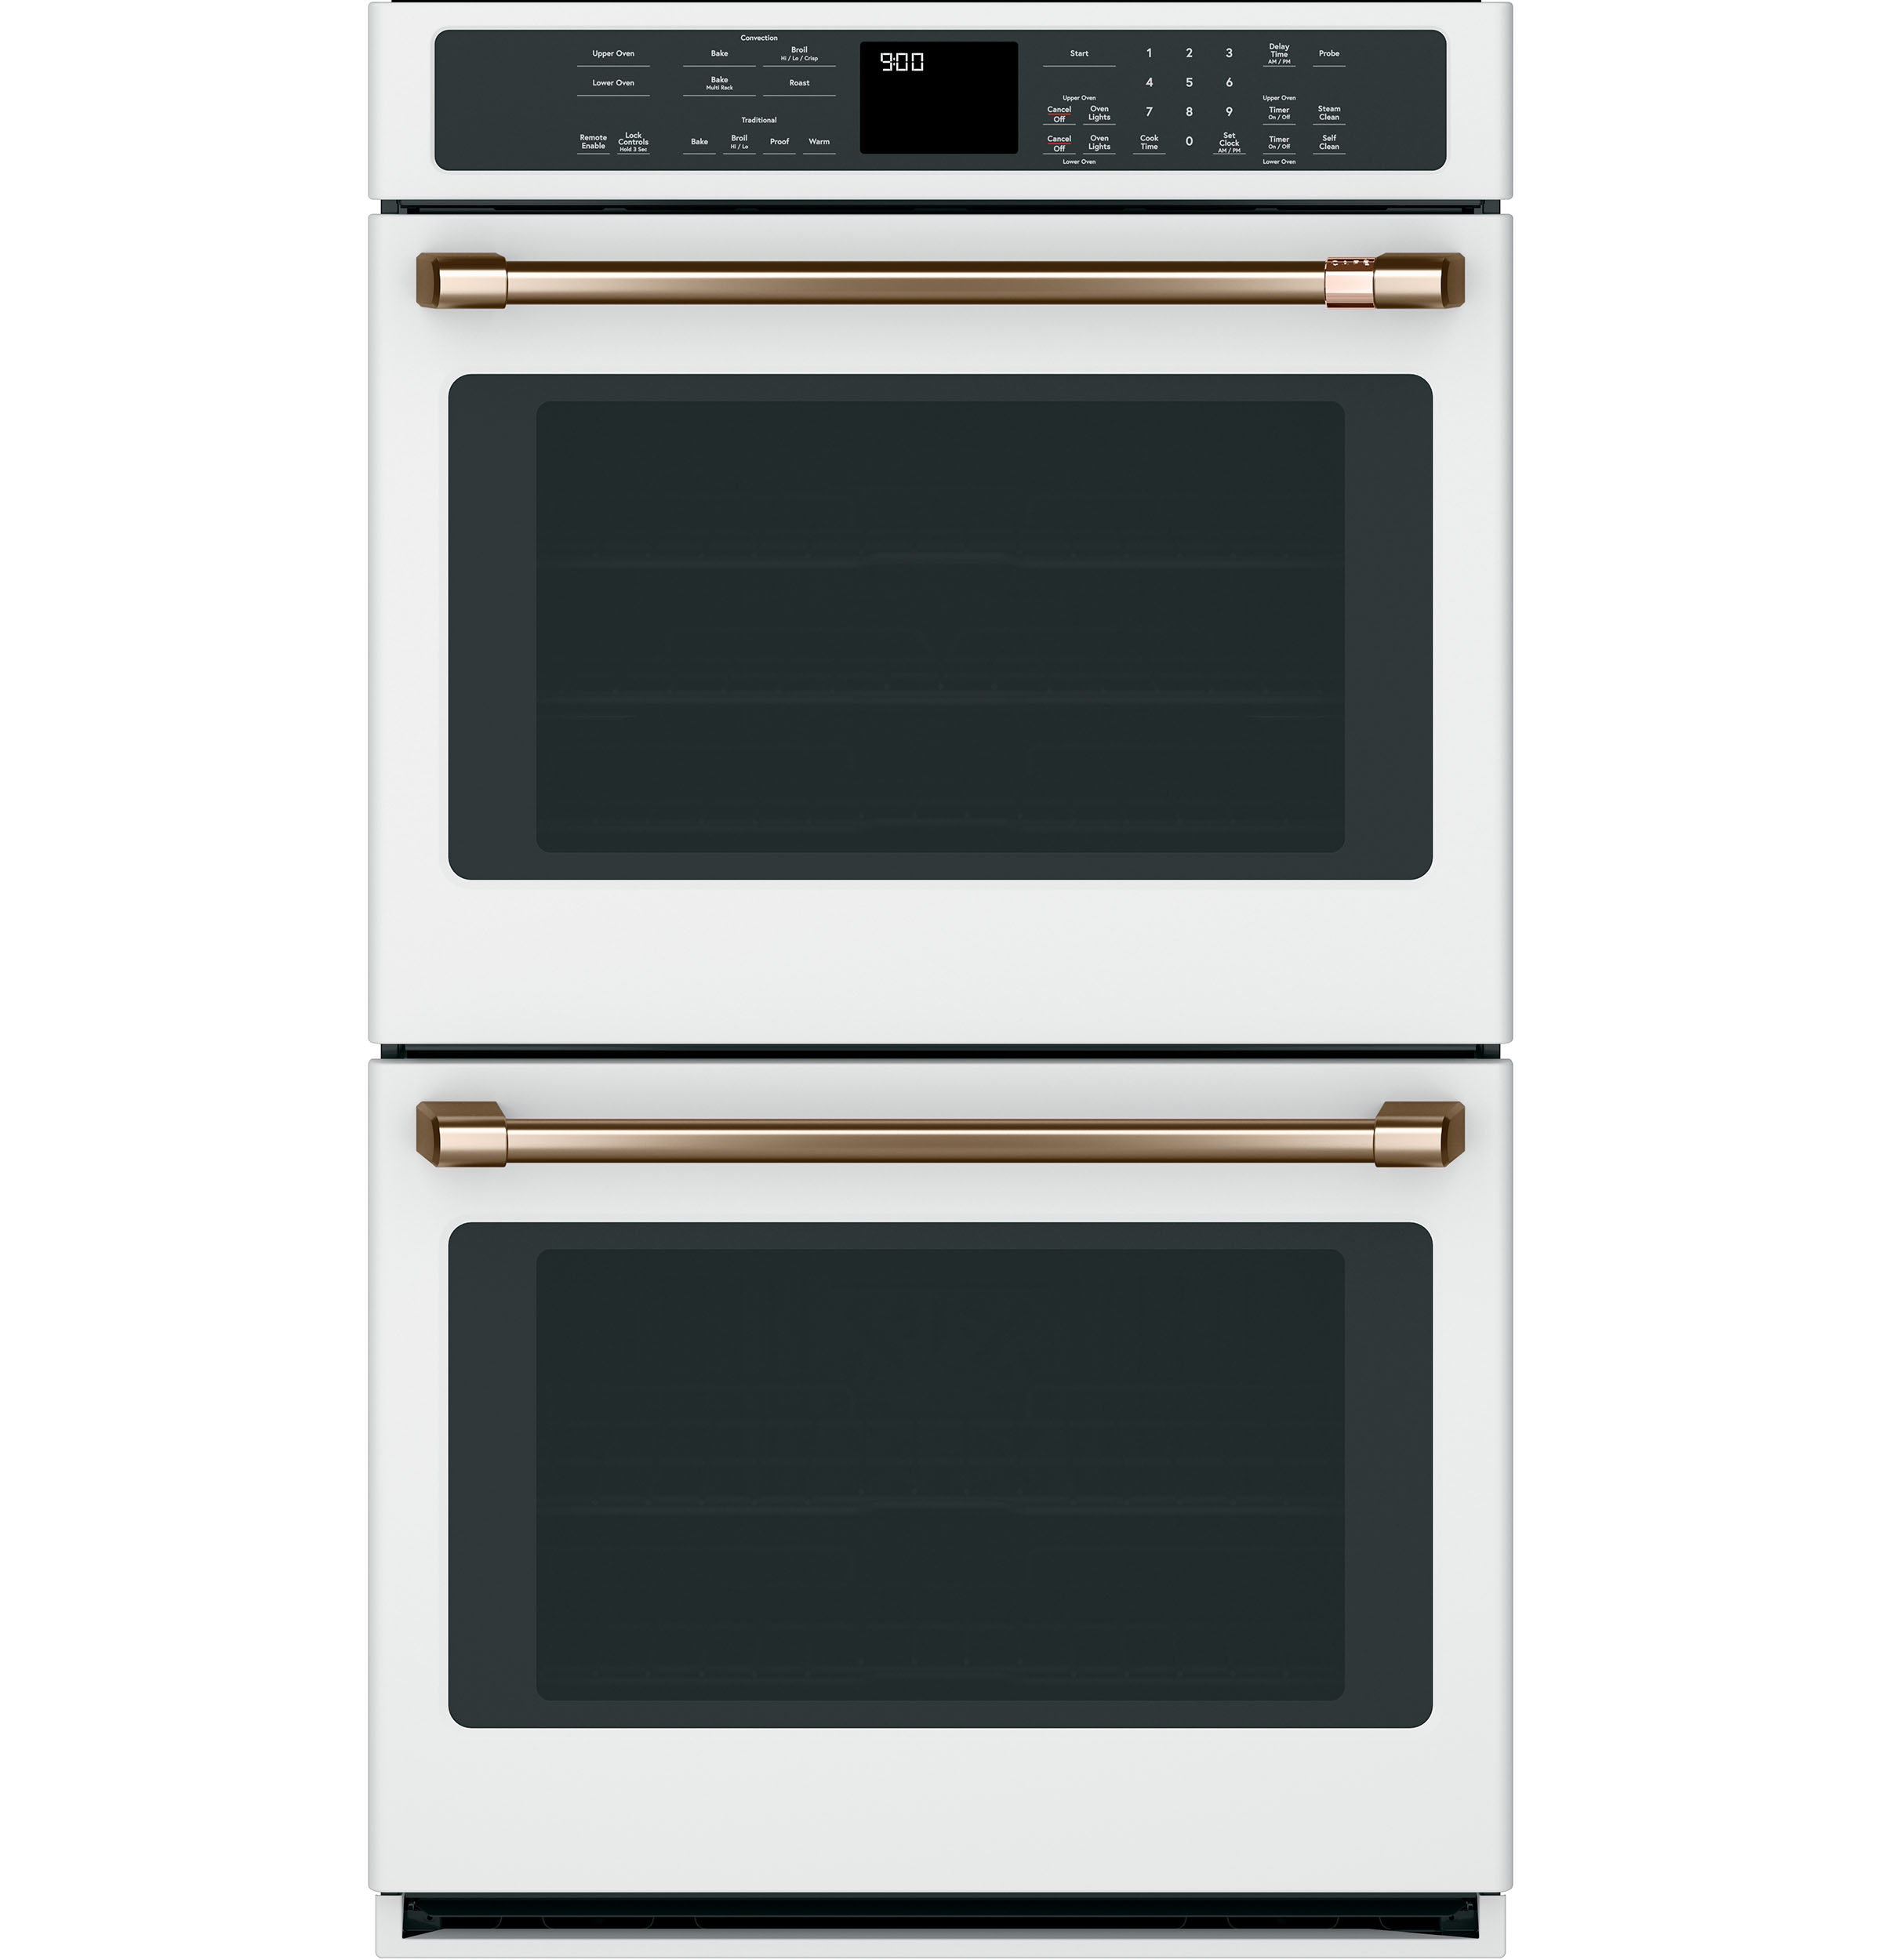 Ctd90dp4mw2 Overview Café 30 Smart Double Wall Oven With